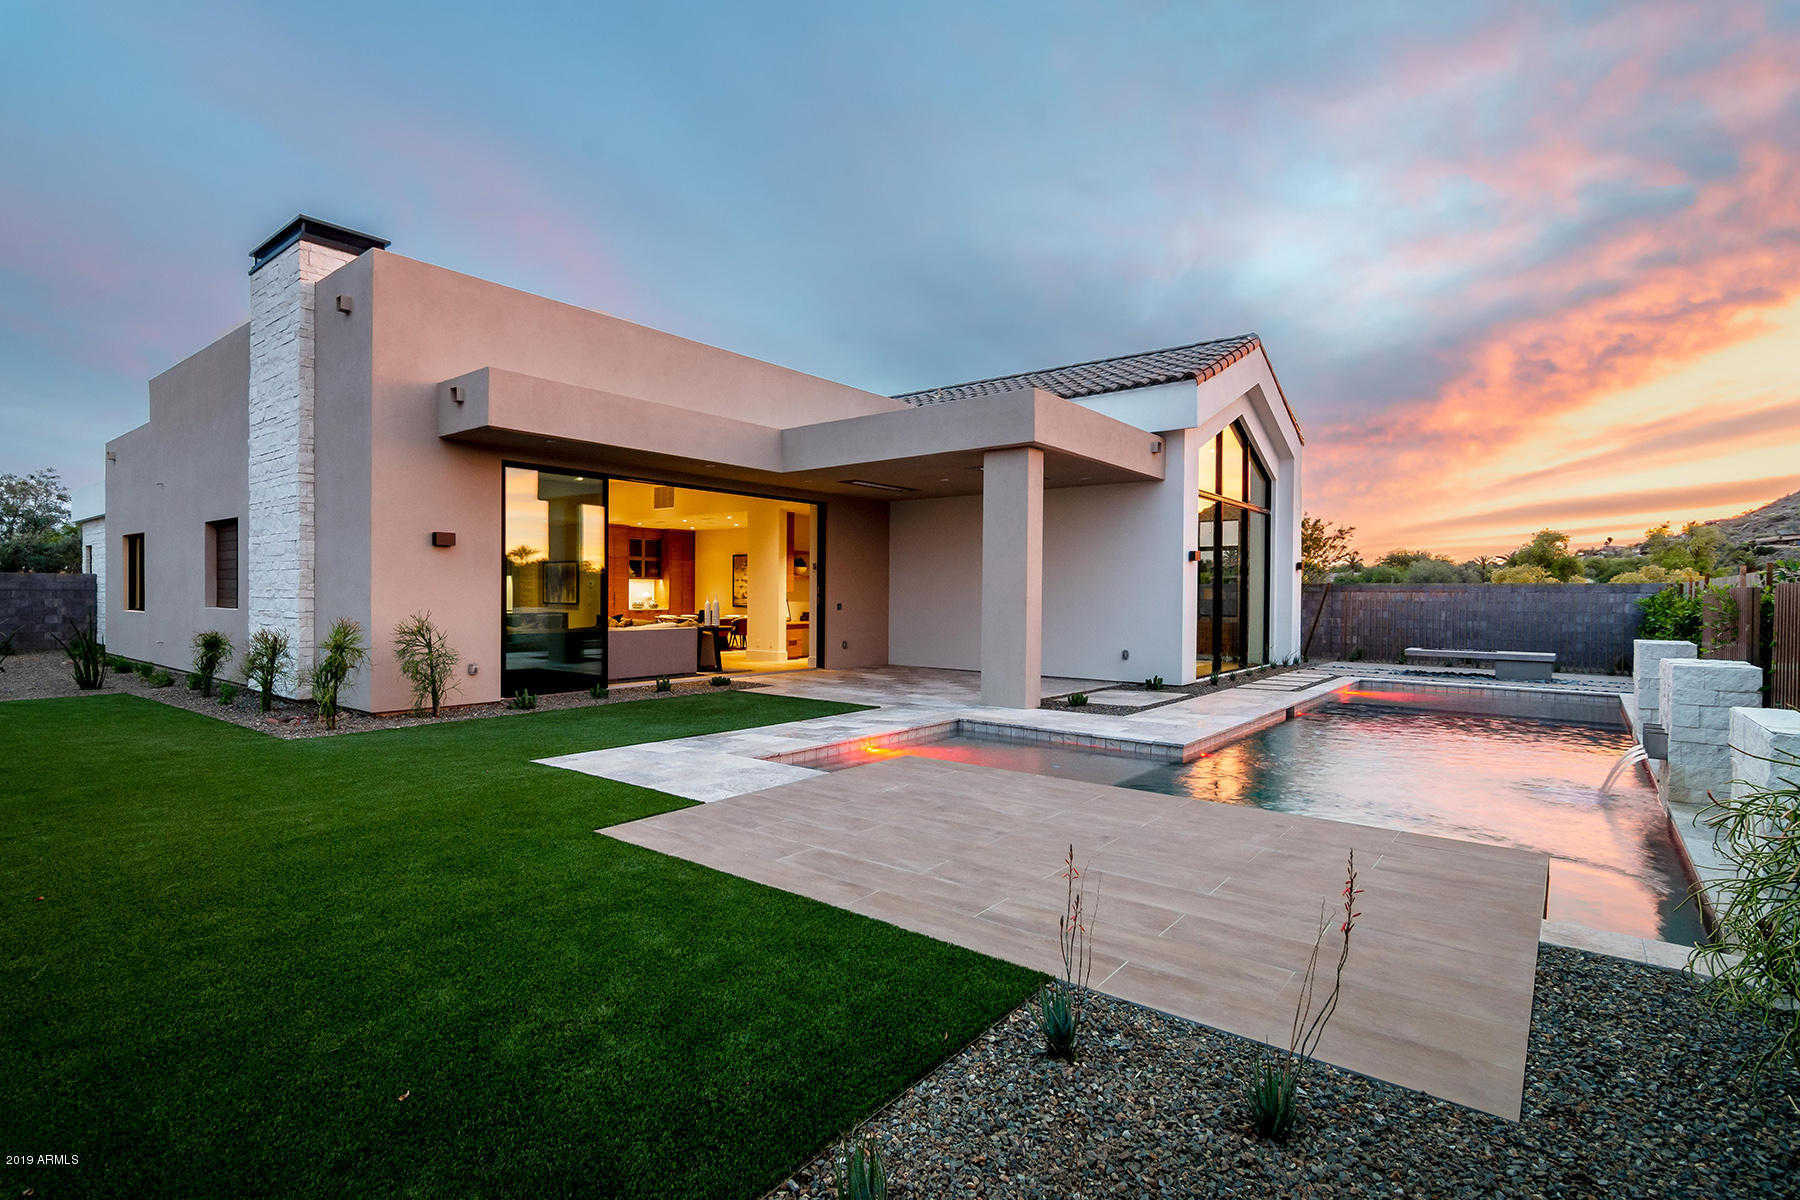 $2,167,709 - 3Br/4Ba - Home for Sale in Ritz-carlton Parcel B, Paradise Valley